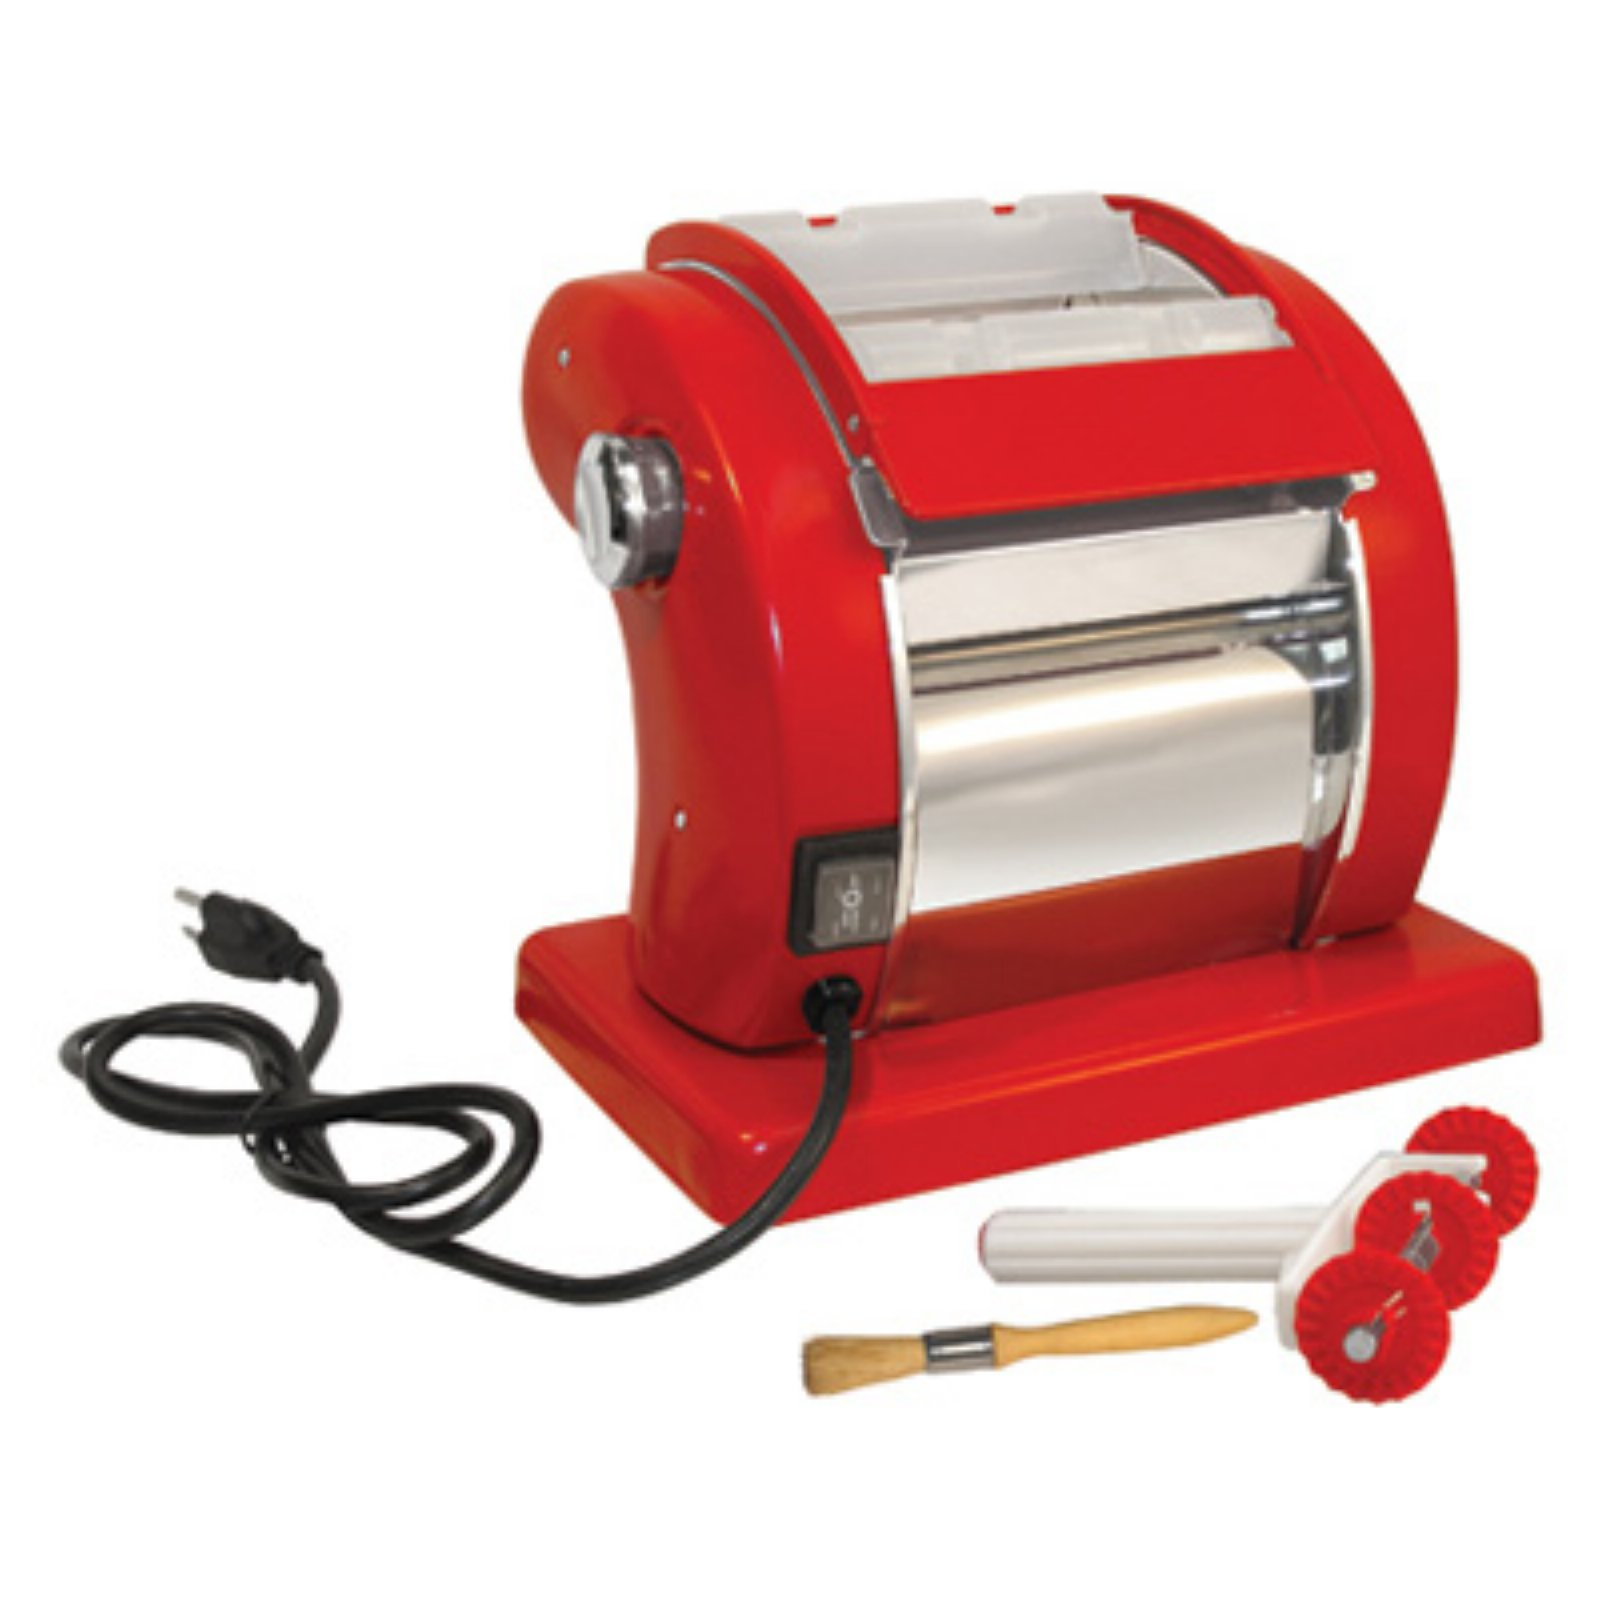 Prago Roma Express Electric Pasta Machine, Red